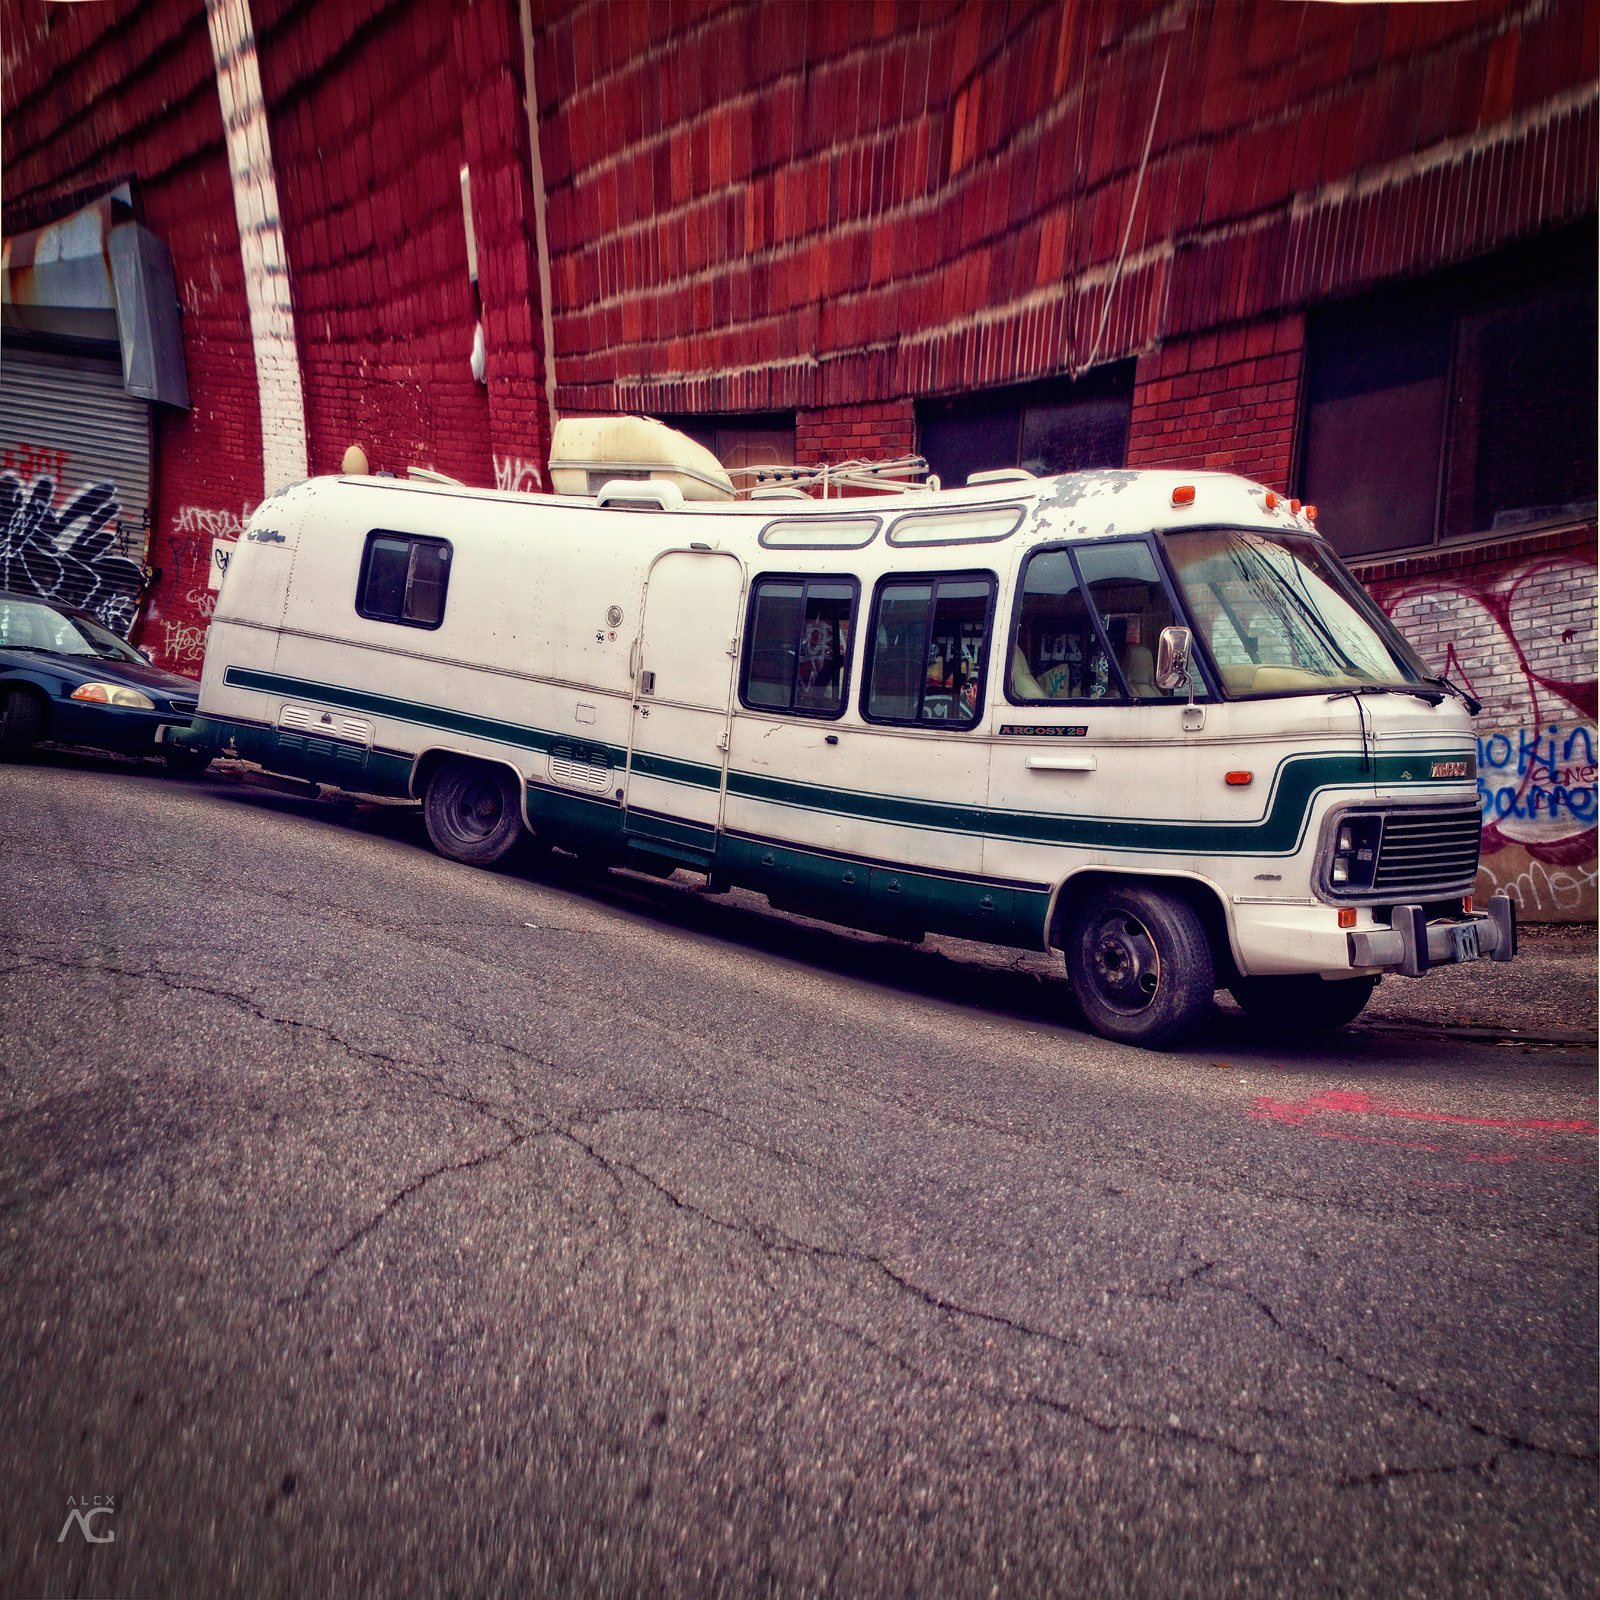 VintageBusOnTheStreetsOfwilliamsburg_warped_1600